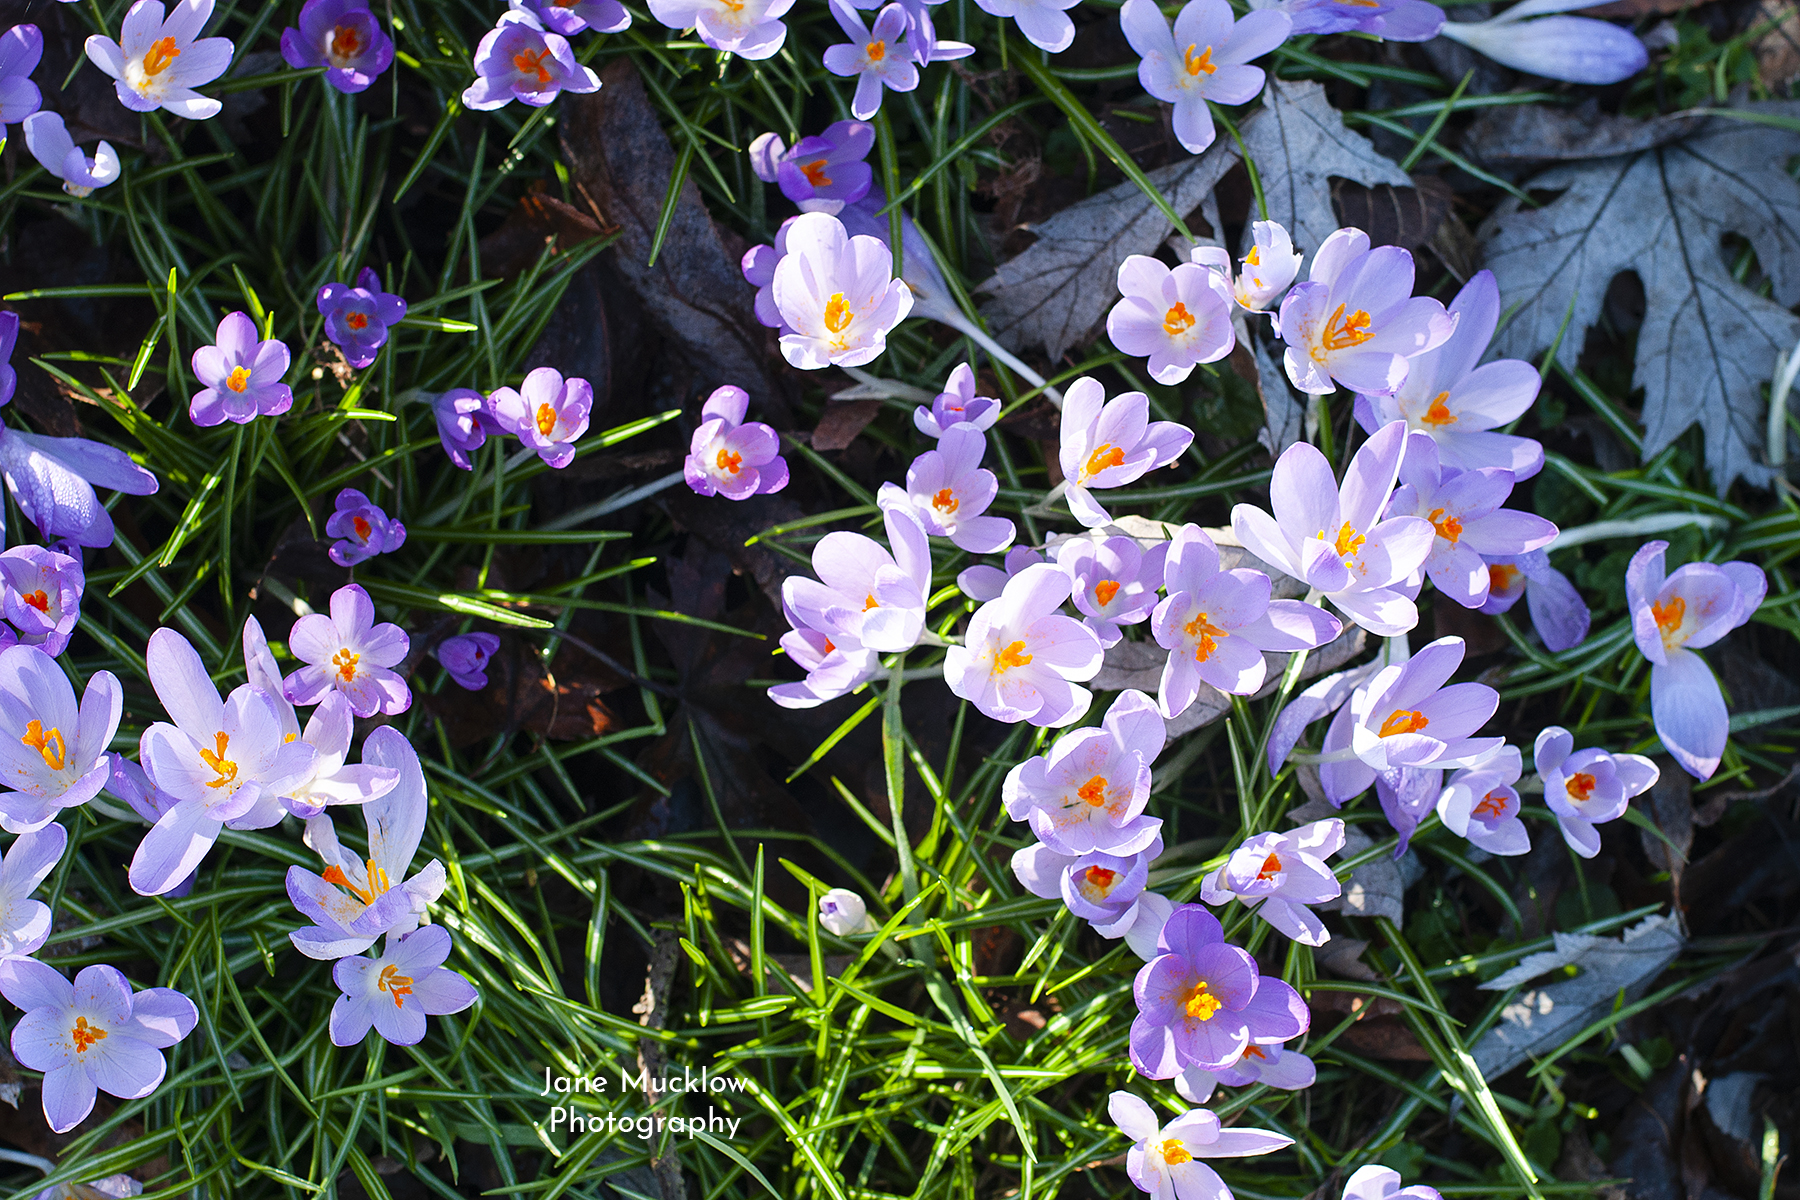 Photo of purple crocus by Jane Mucklow